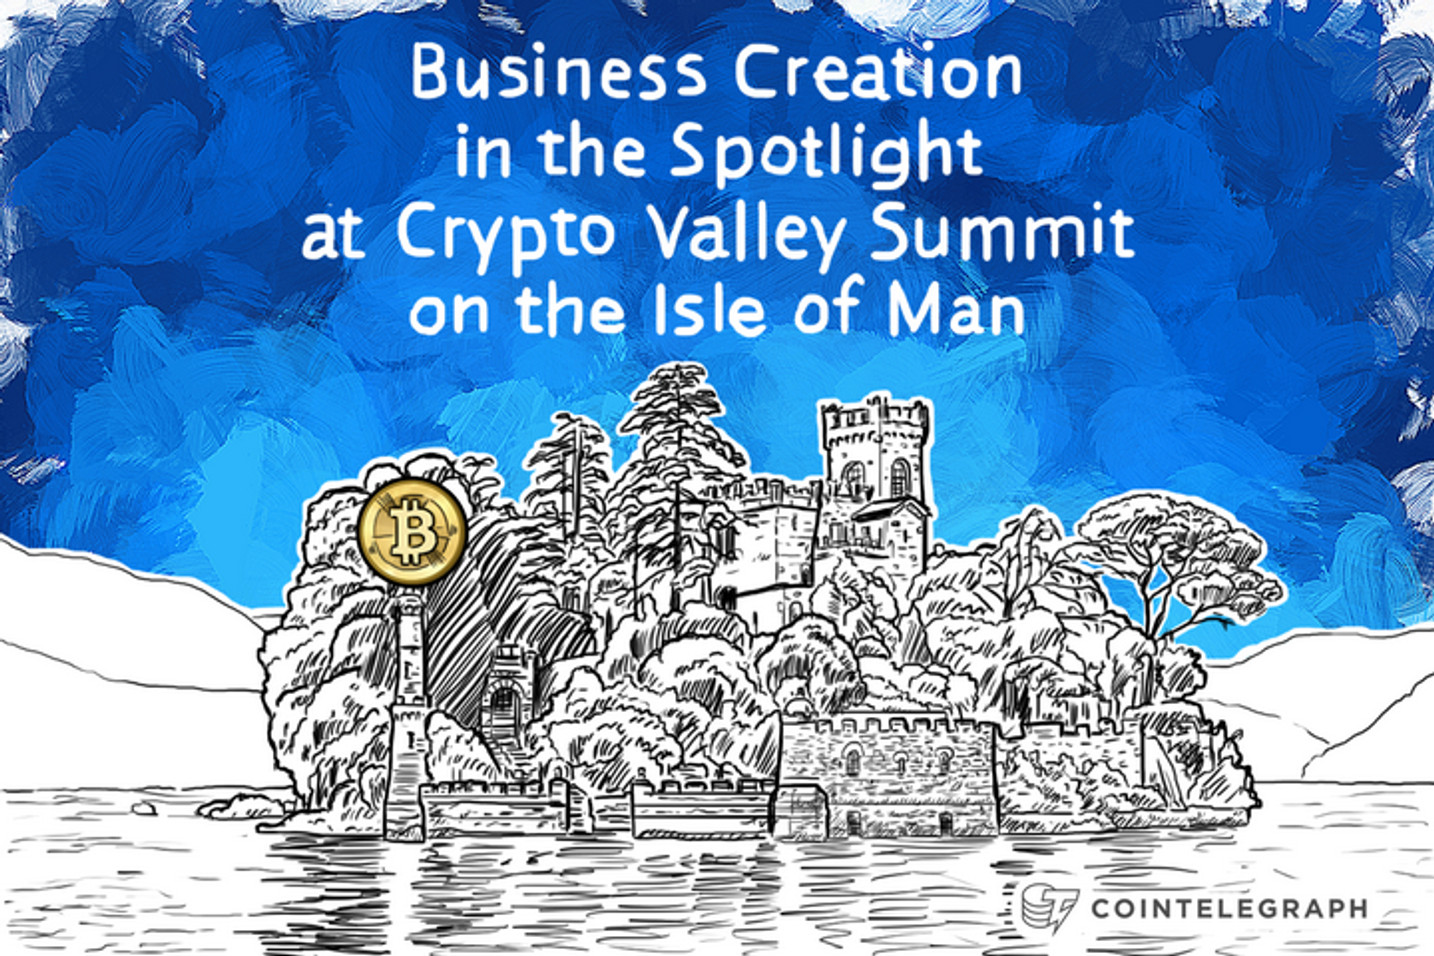 Business Creation in the Spotlight at Crypto Valley Summit on the Isle of Man